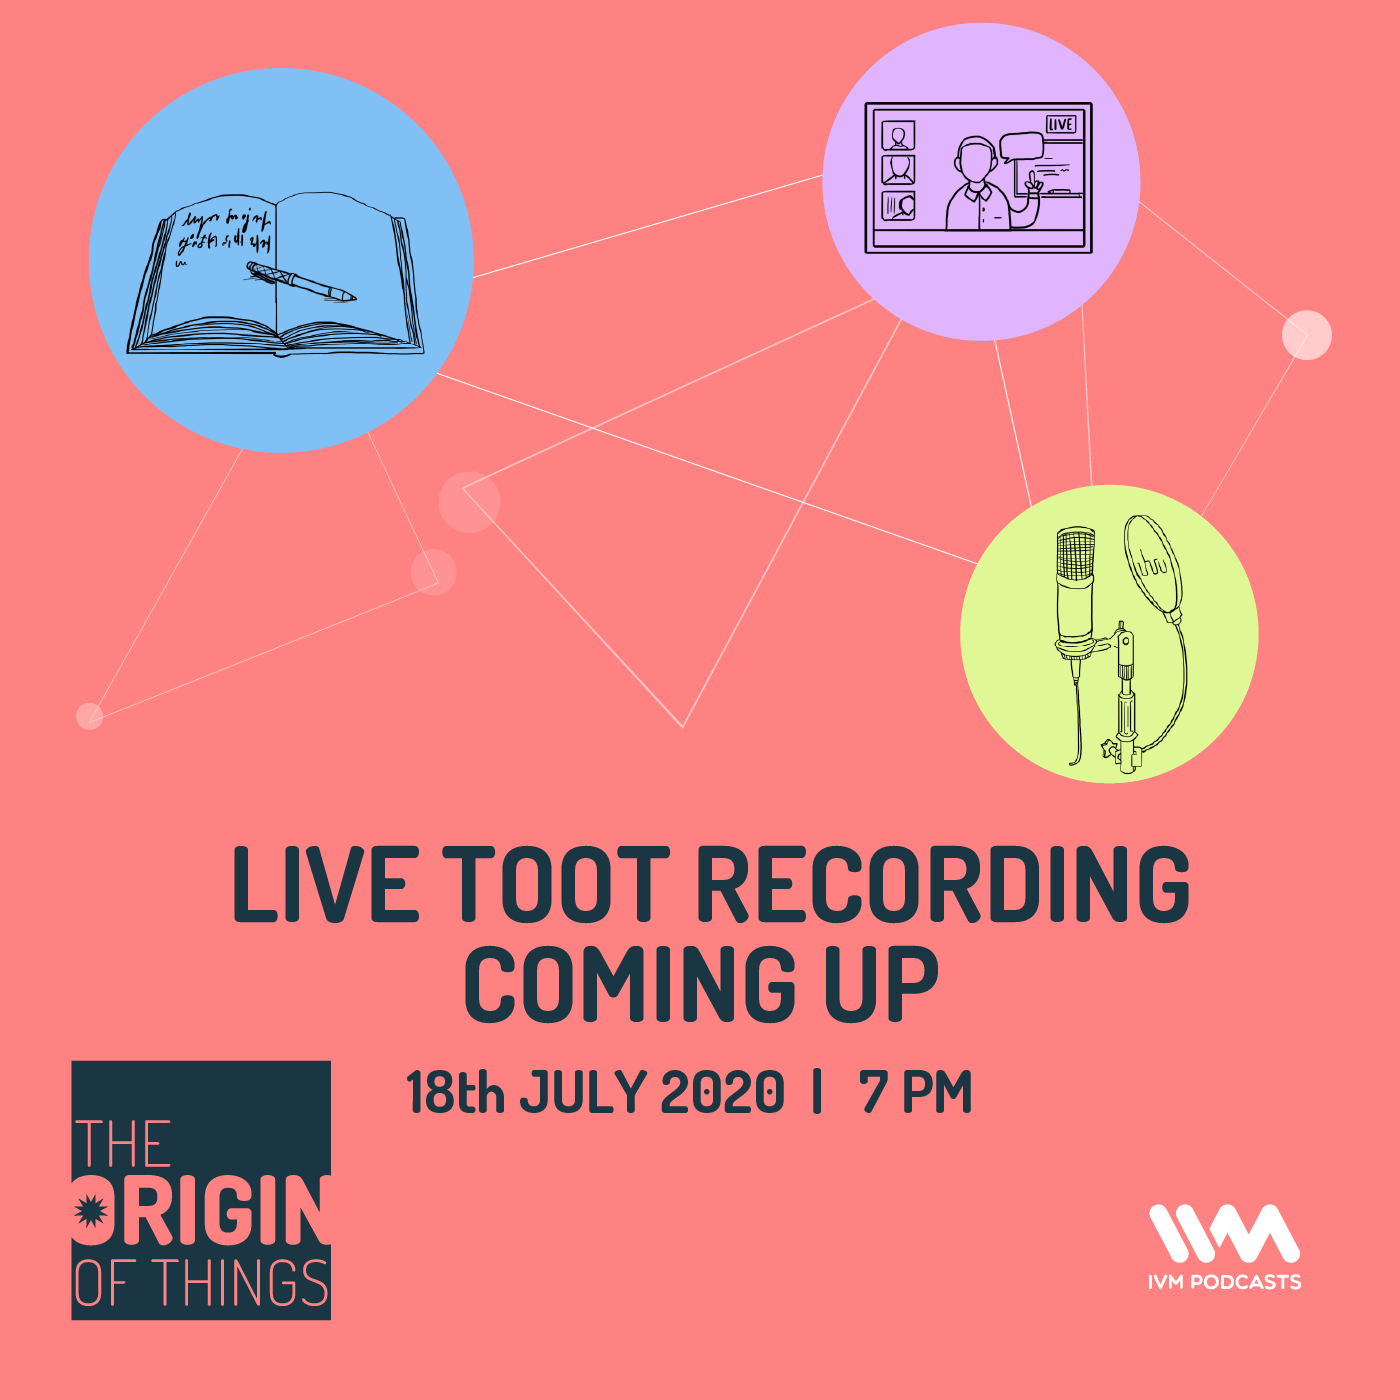 Live TOOT recording coming up: 18 July, 7 PM IST